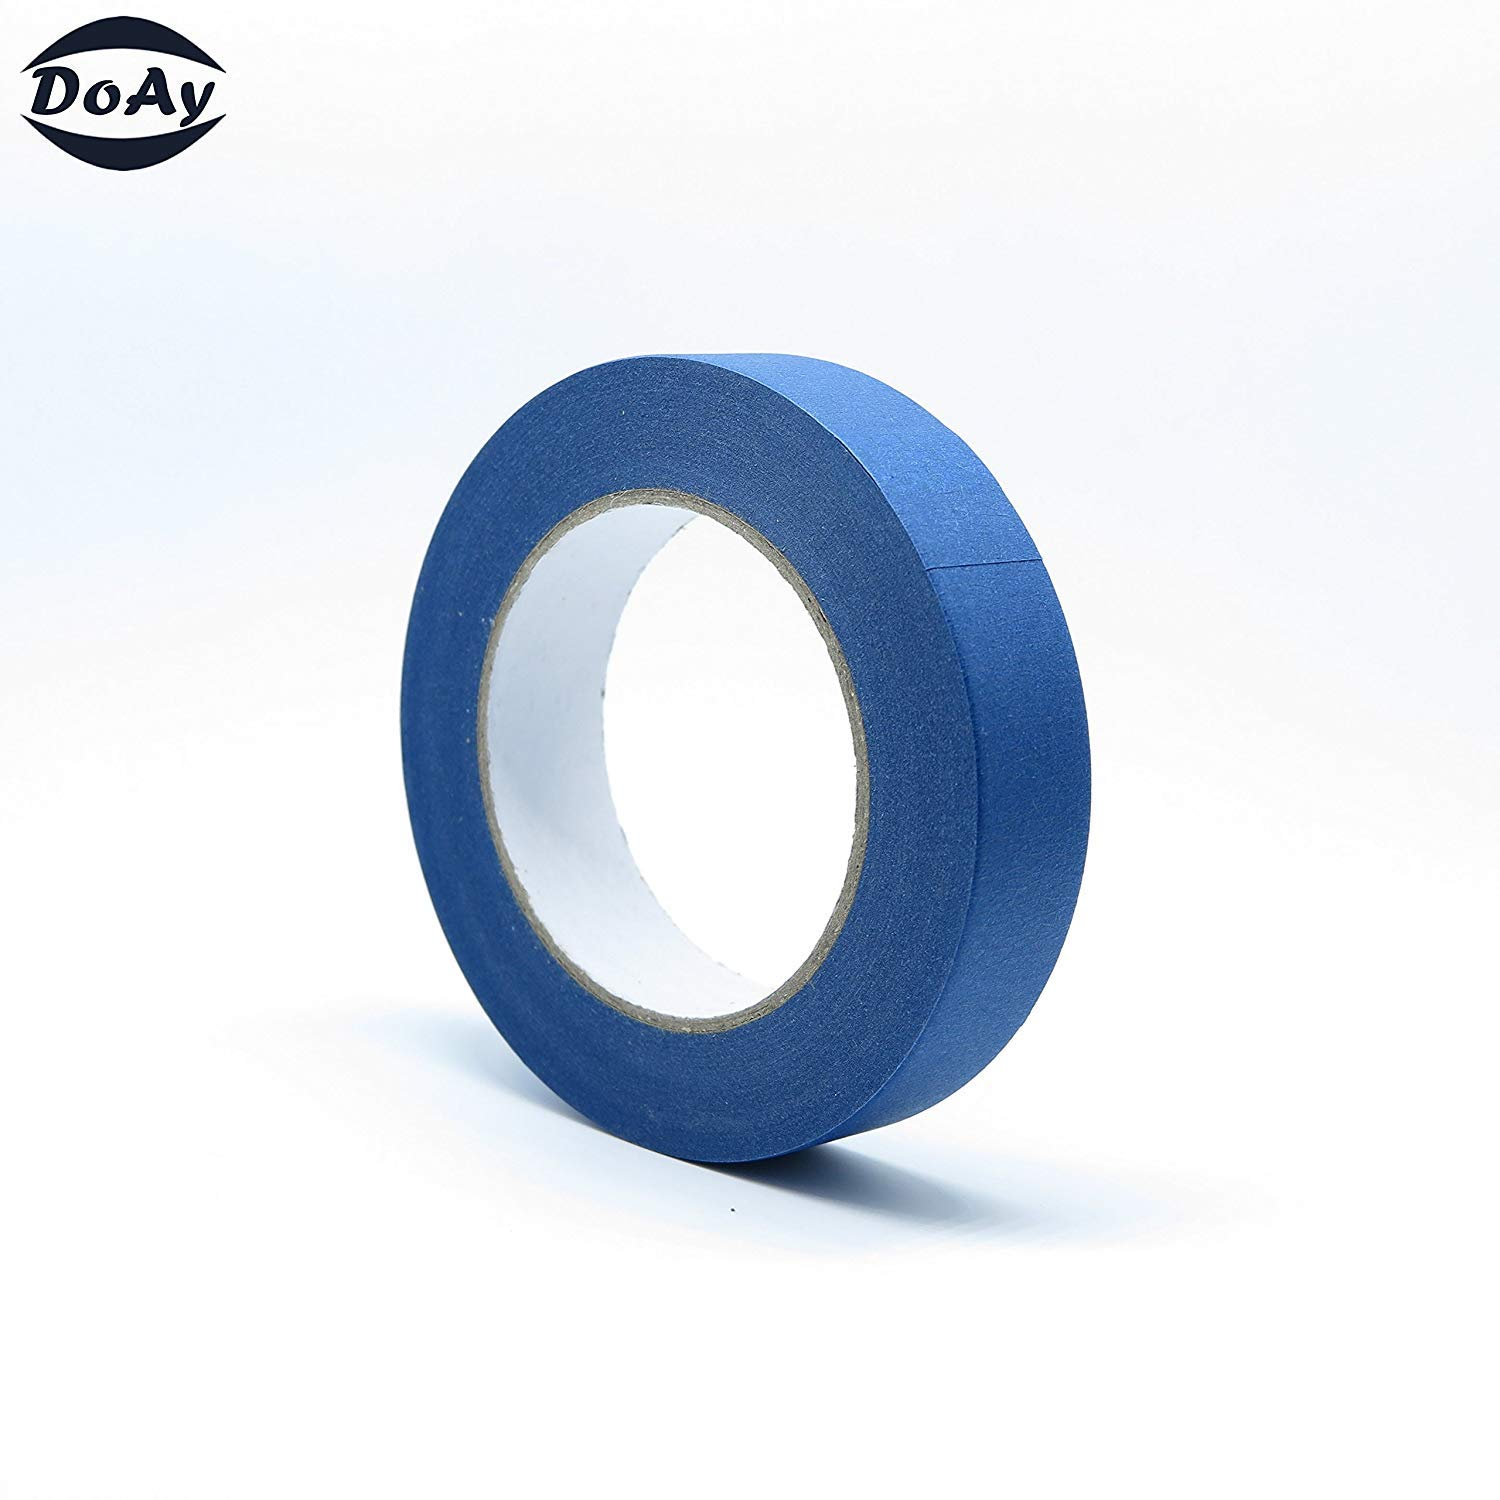 3 Pack 3 Rolls Painting /& Masking Tape Leaves No Residue Behind - Multi Surface Use 60 Yards ISO 9001 Worldwide Quality Blue Painters Tape 1 Inch Easy and Clean Removal